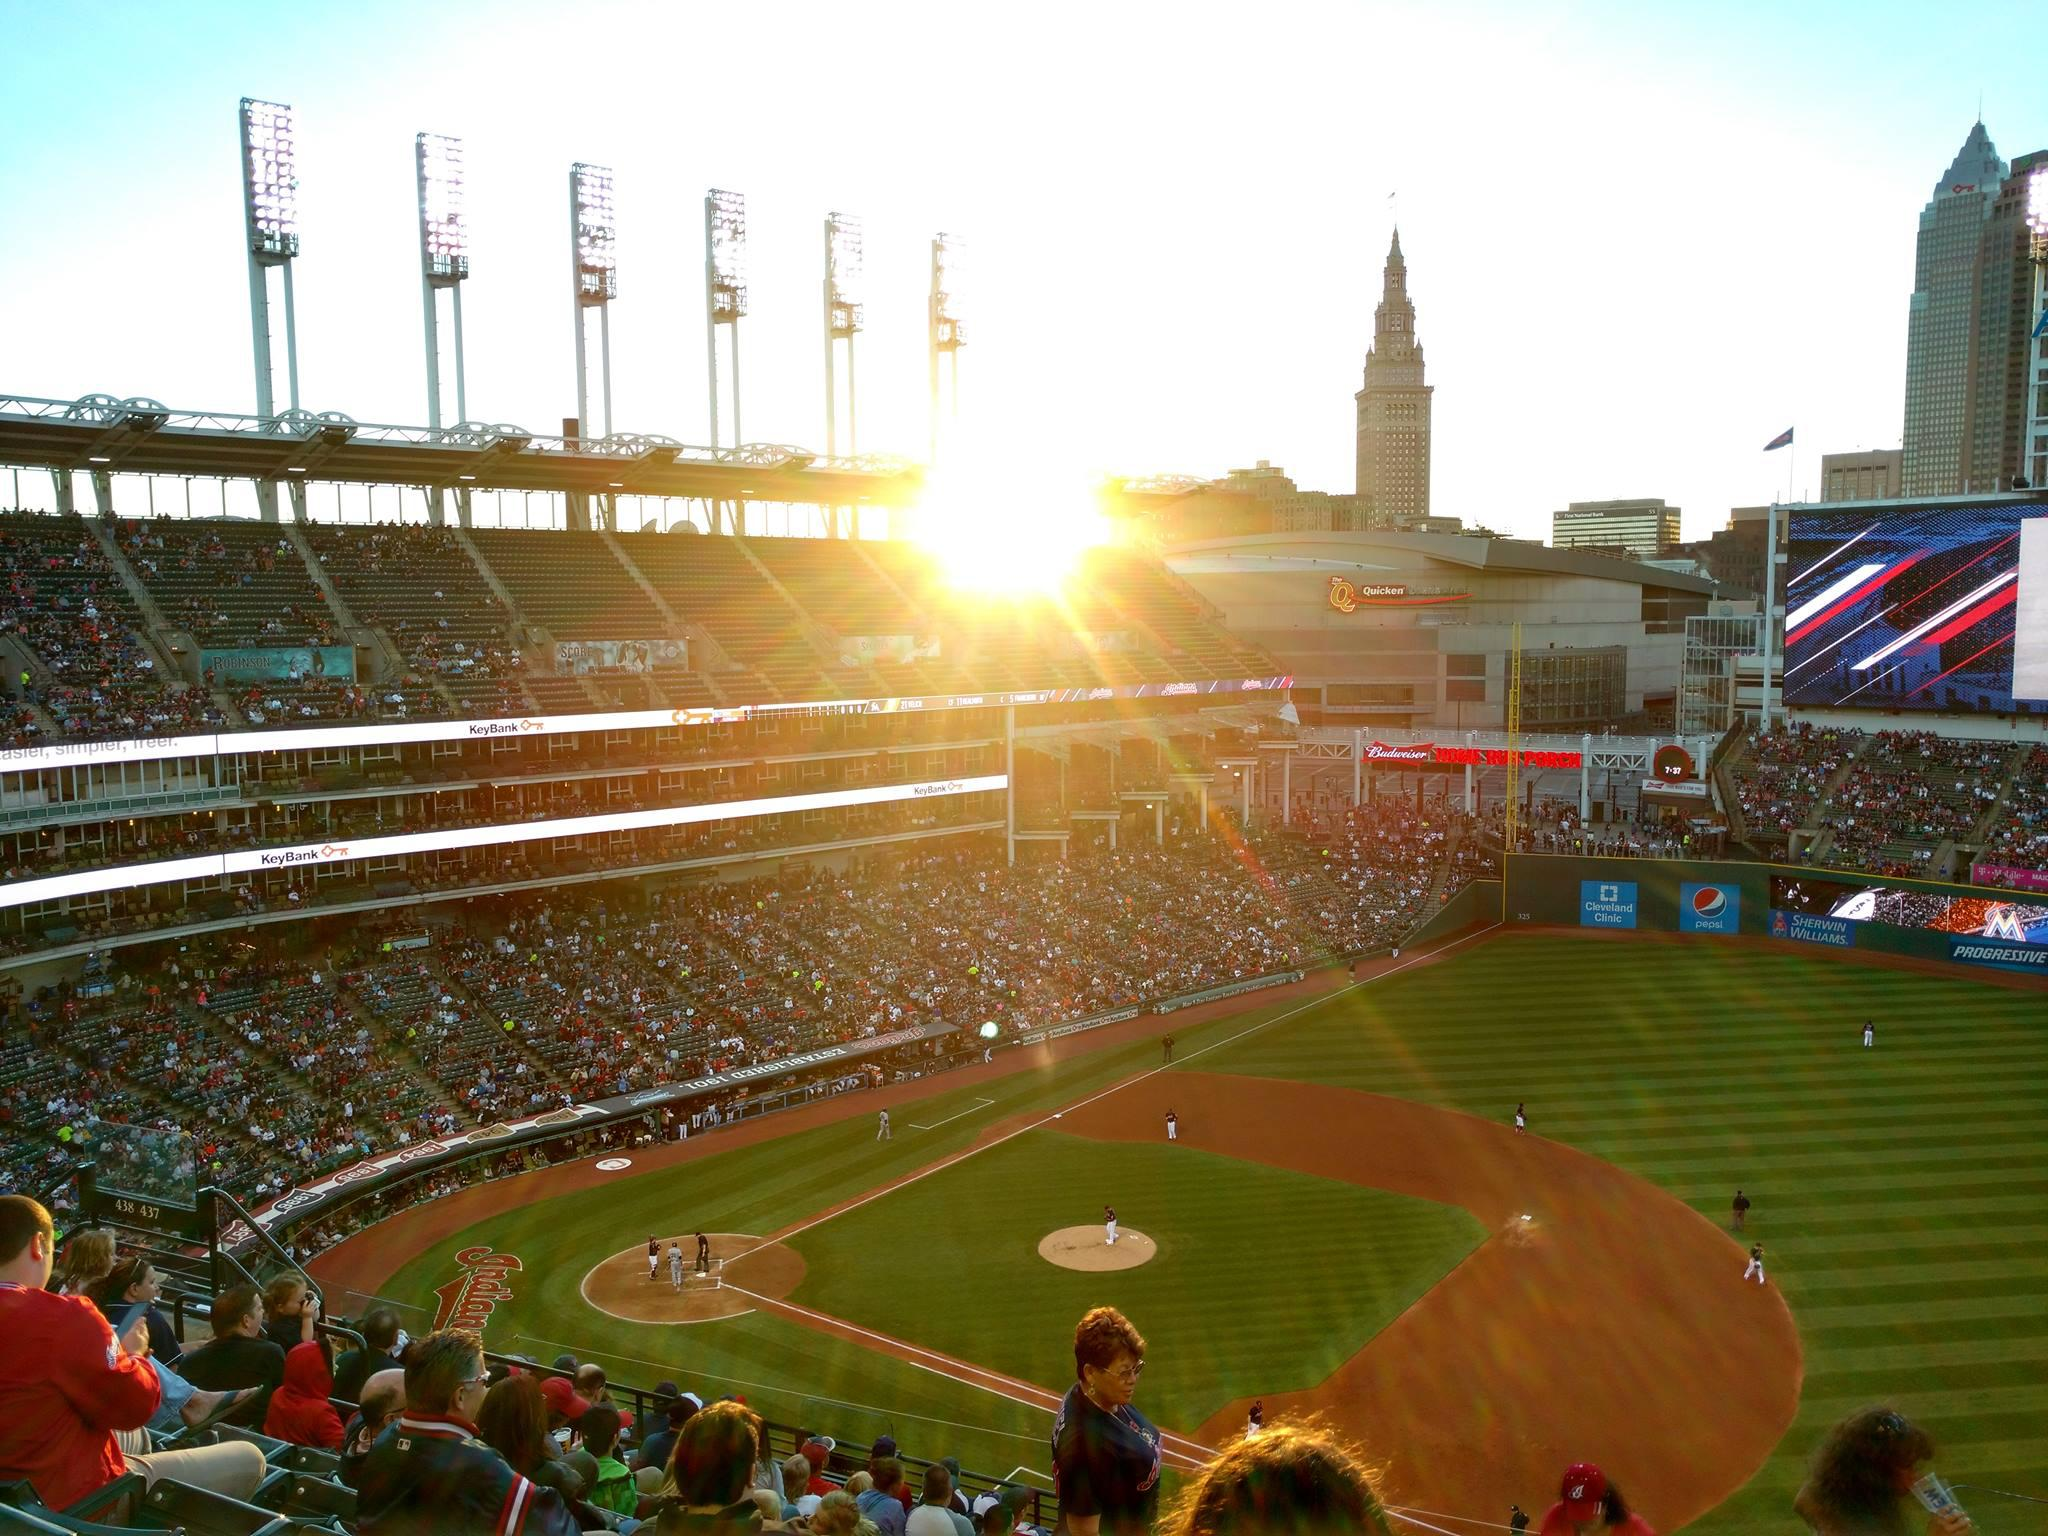 Cleveland Indians vs. Tampa Bay Rays (Away)